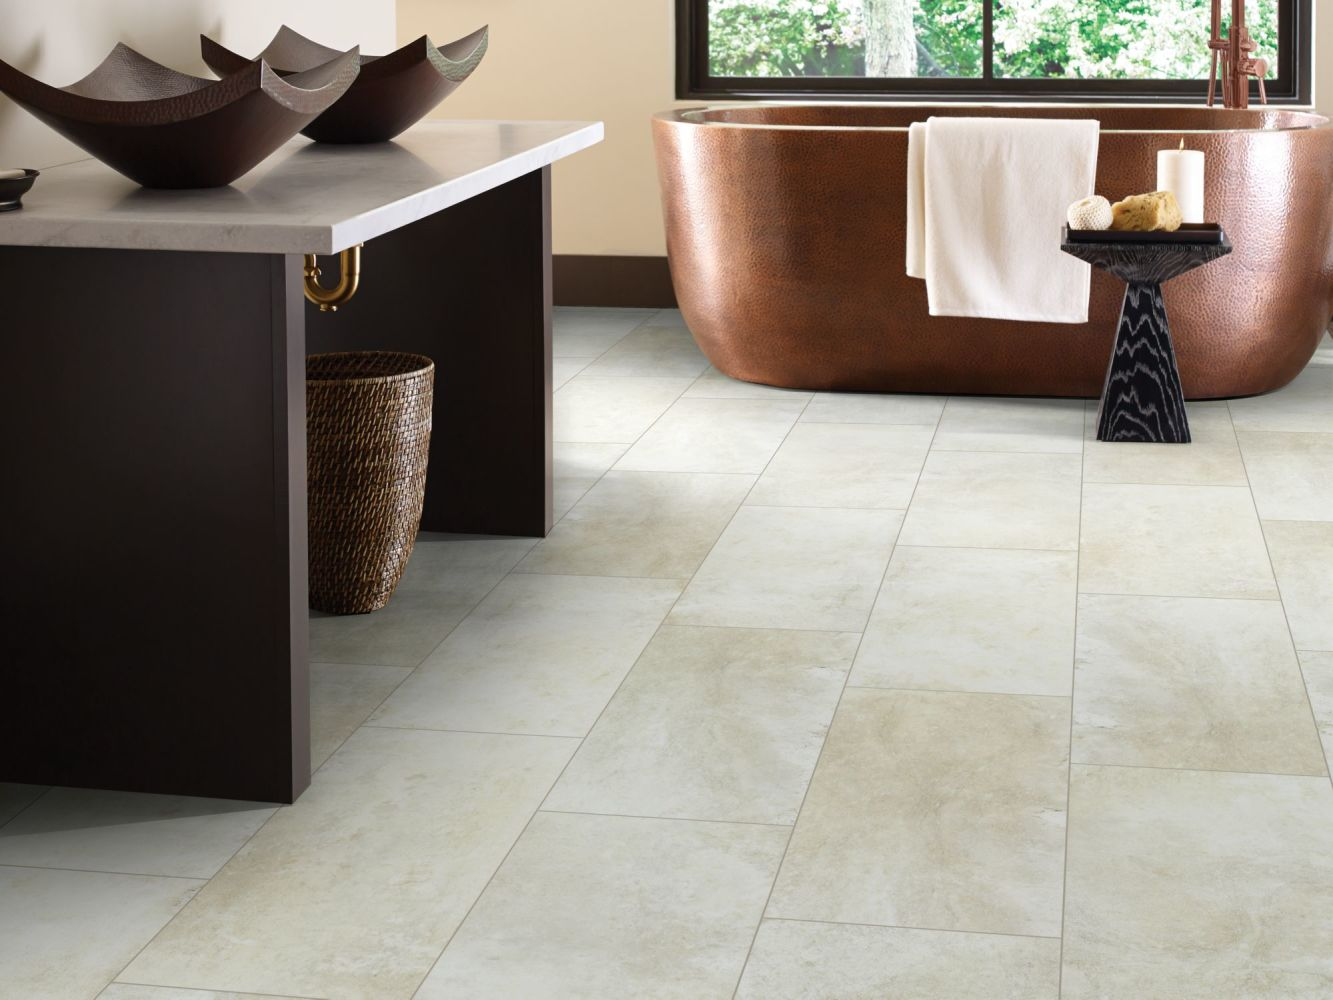 Shaw Floors Resilient Property Solutions Urban Organics Shale 00281_VE280